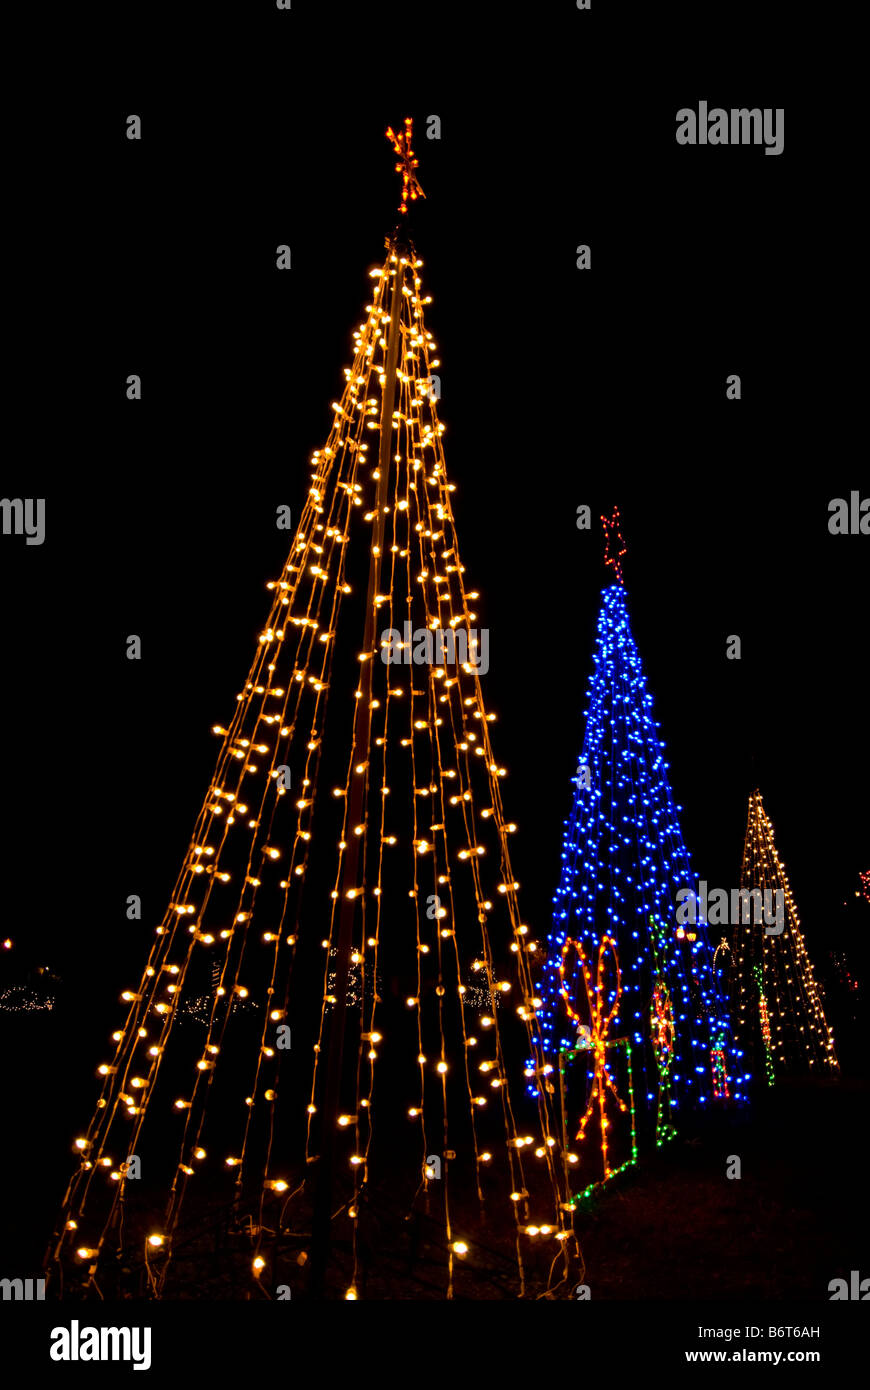 Three Christmas Trees Bright Colors Two White Lights One Blue Light